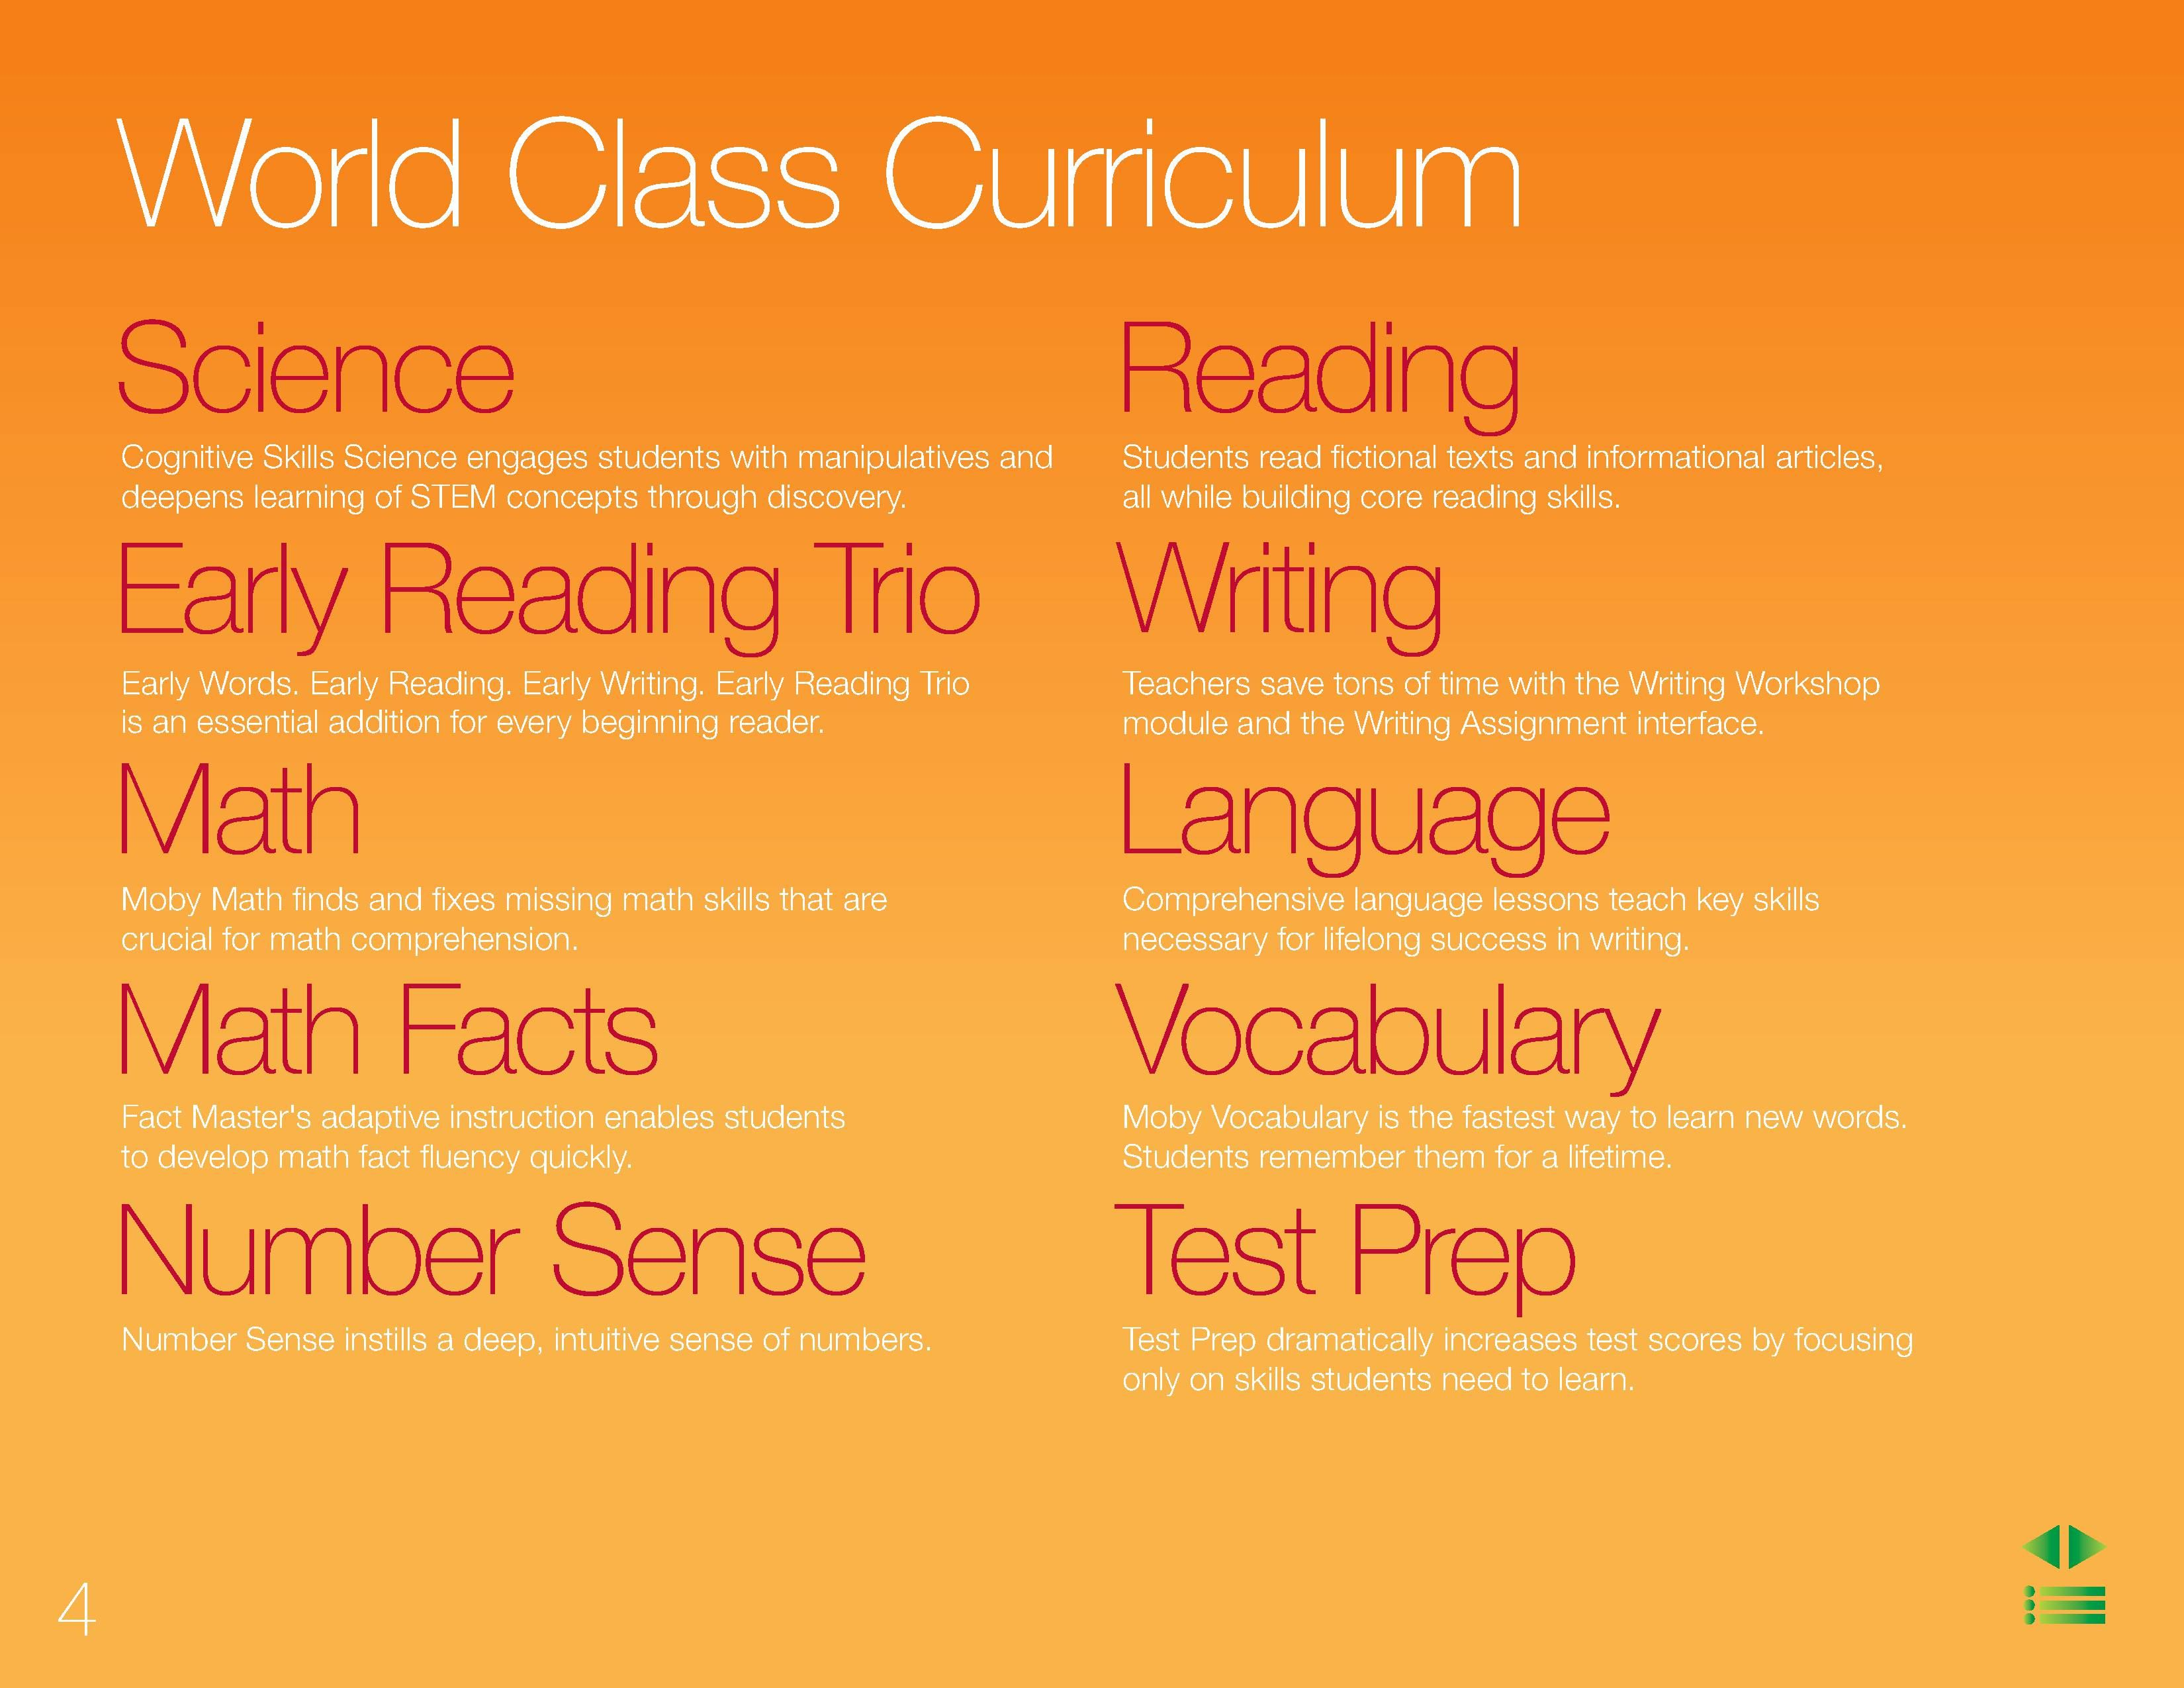 World Class Curriculum | The MobyMax curriculum covers science ...